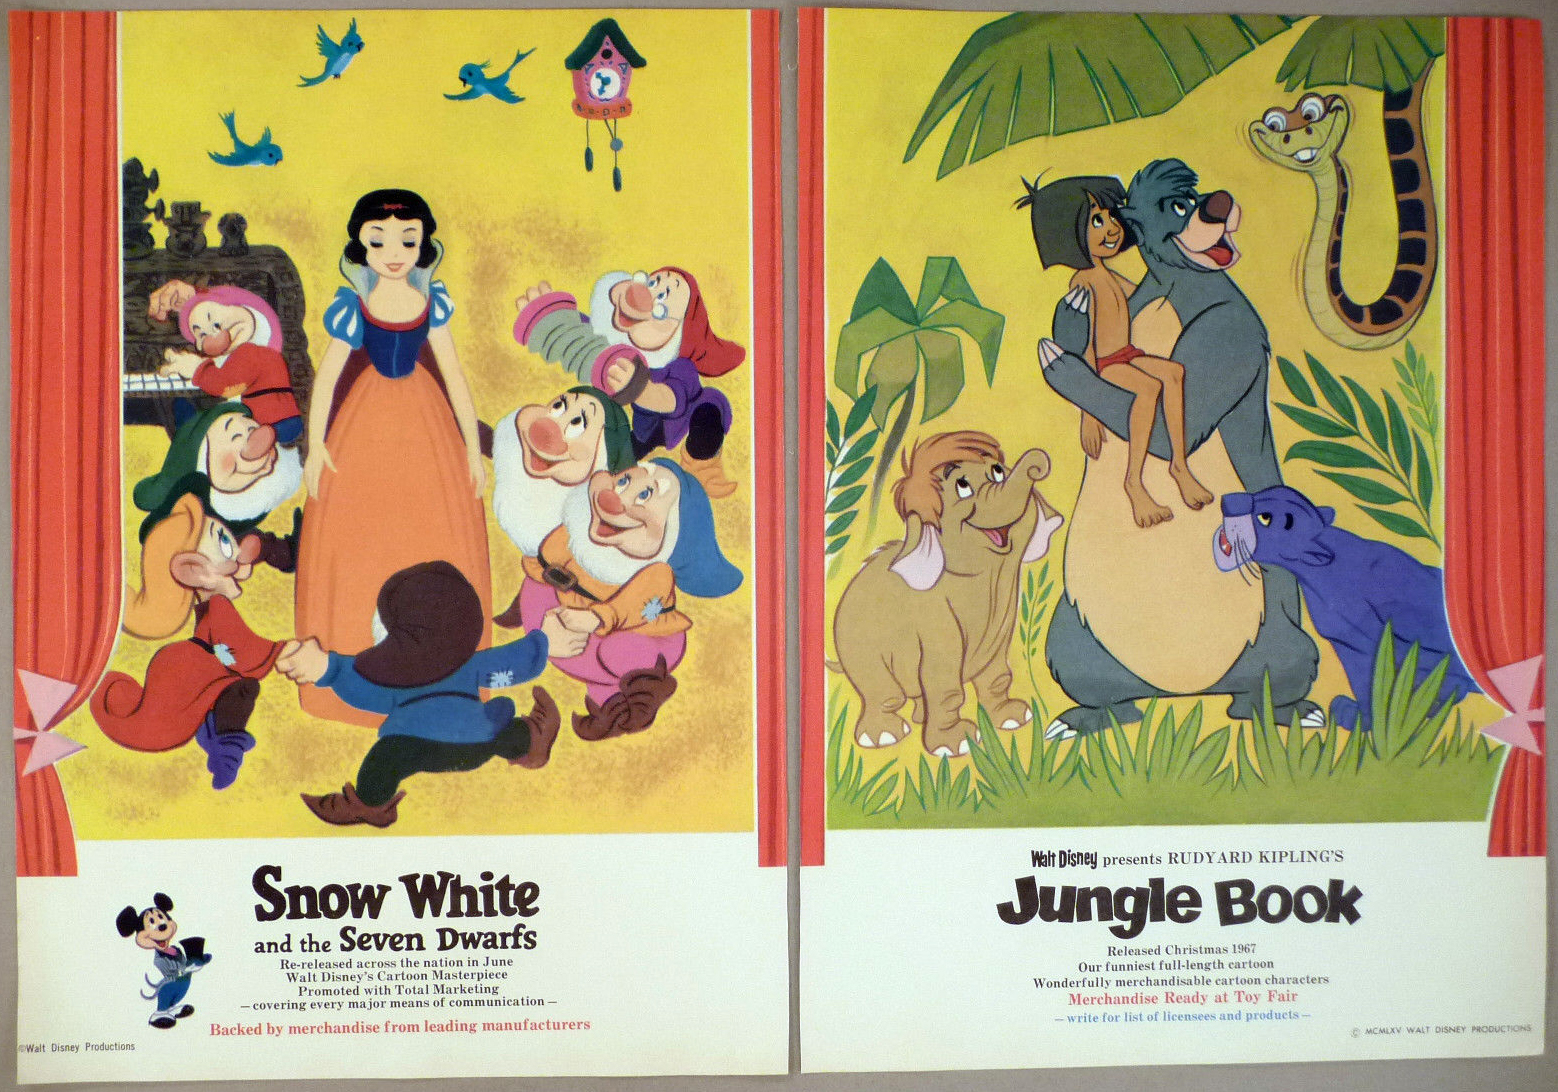 aa8dbb5c6a Includes the promotion of the US re-release that year of Snow White